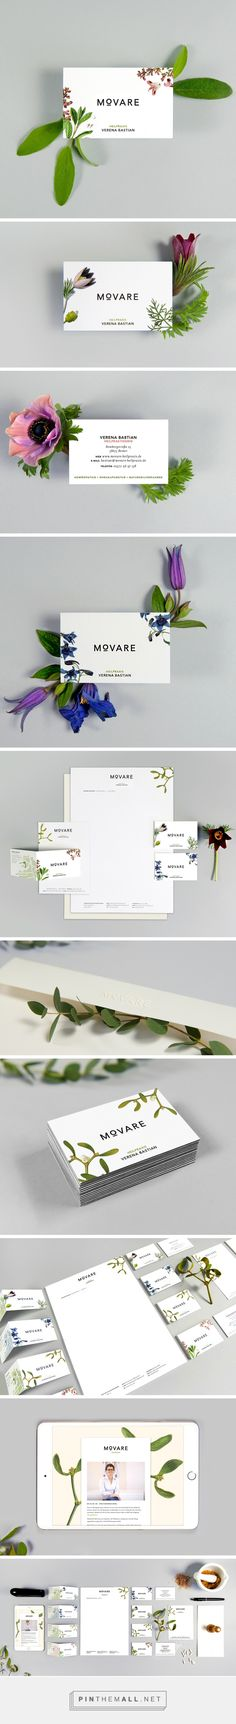 MOVARE Healing Clinic Branding by Manx Design | Fivestar Branding Agency – Design and Branding Agency & Curated Inspiration Gallery